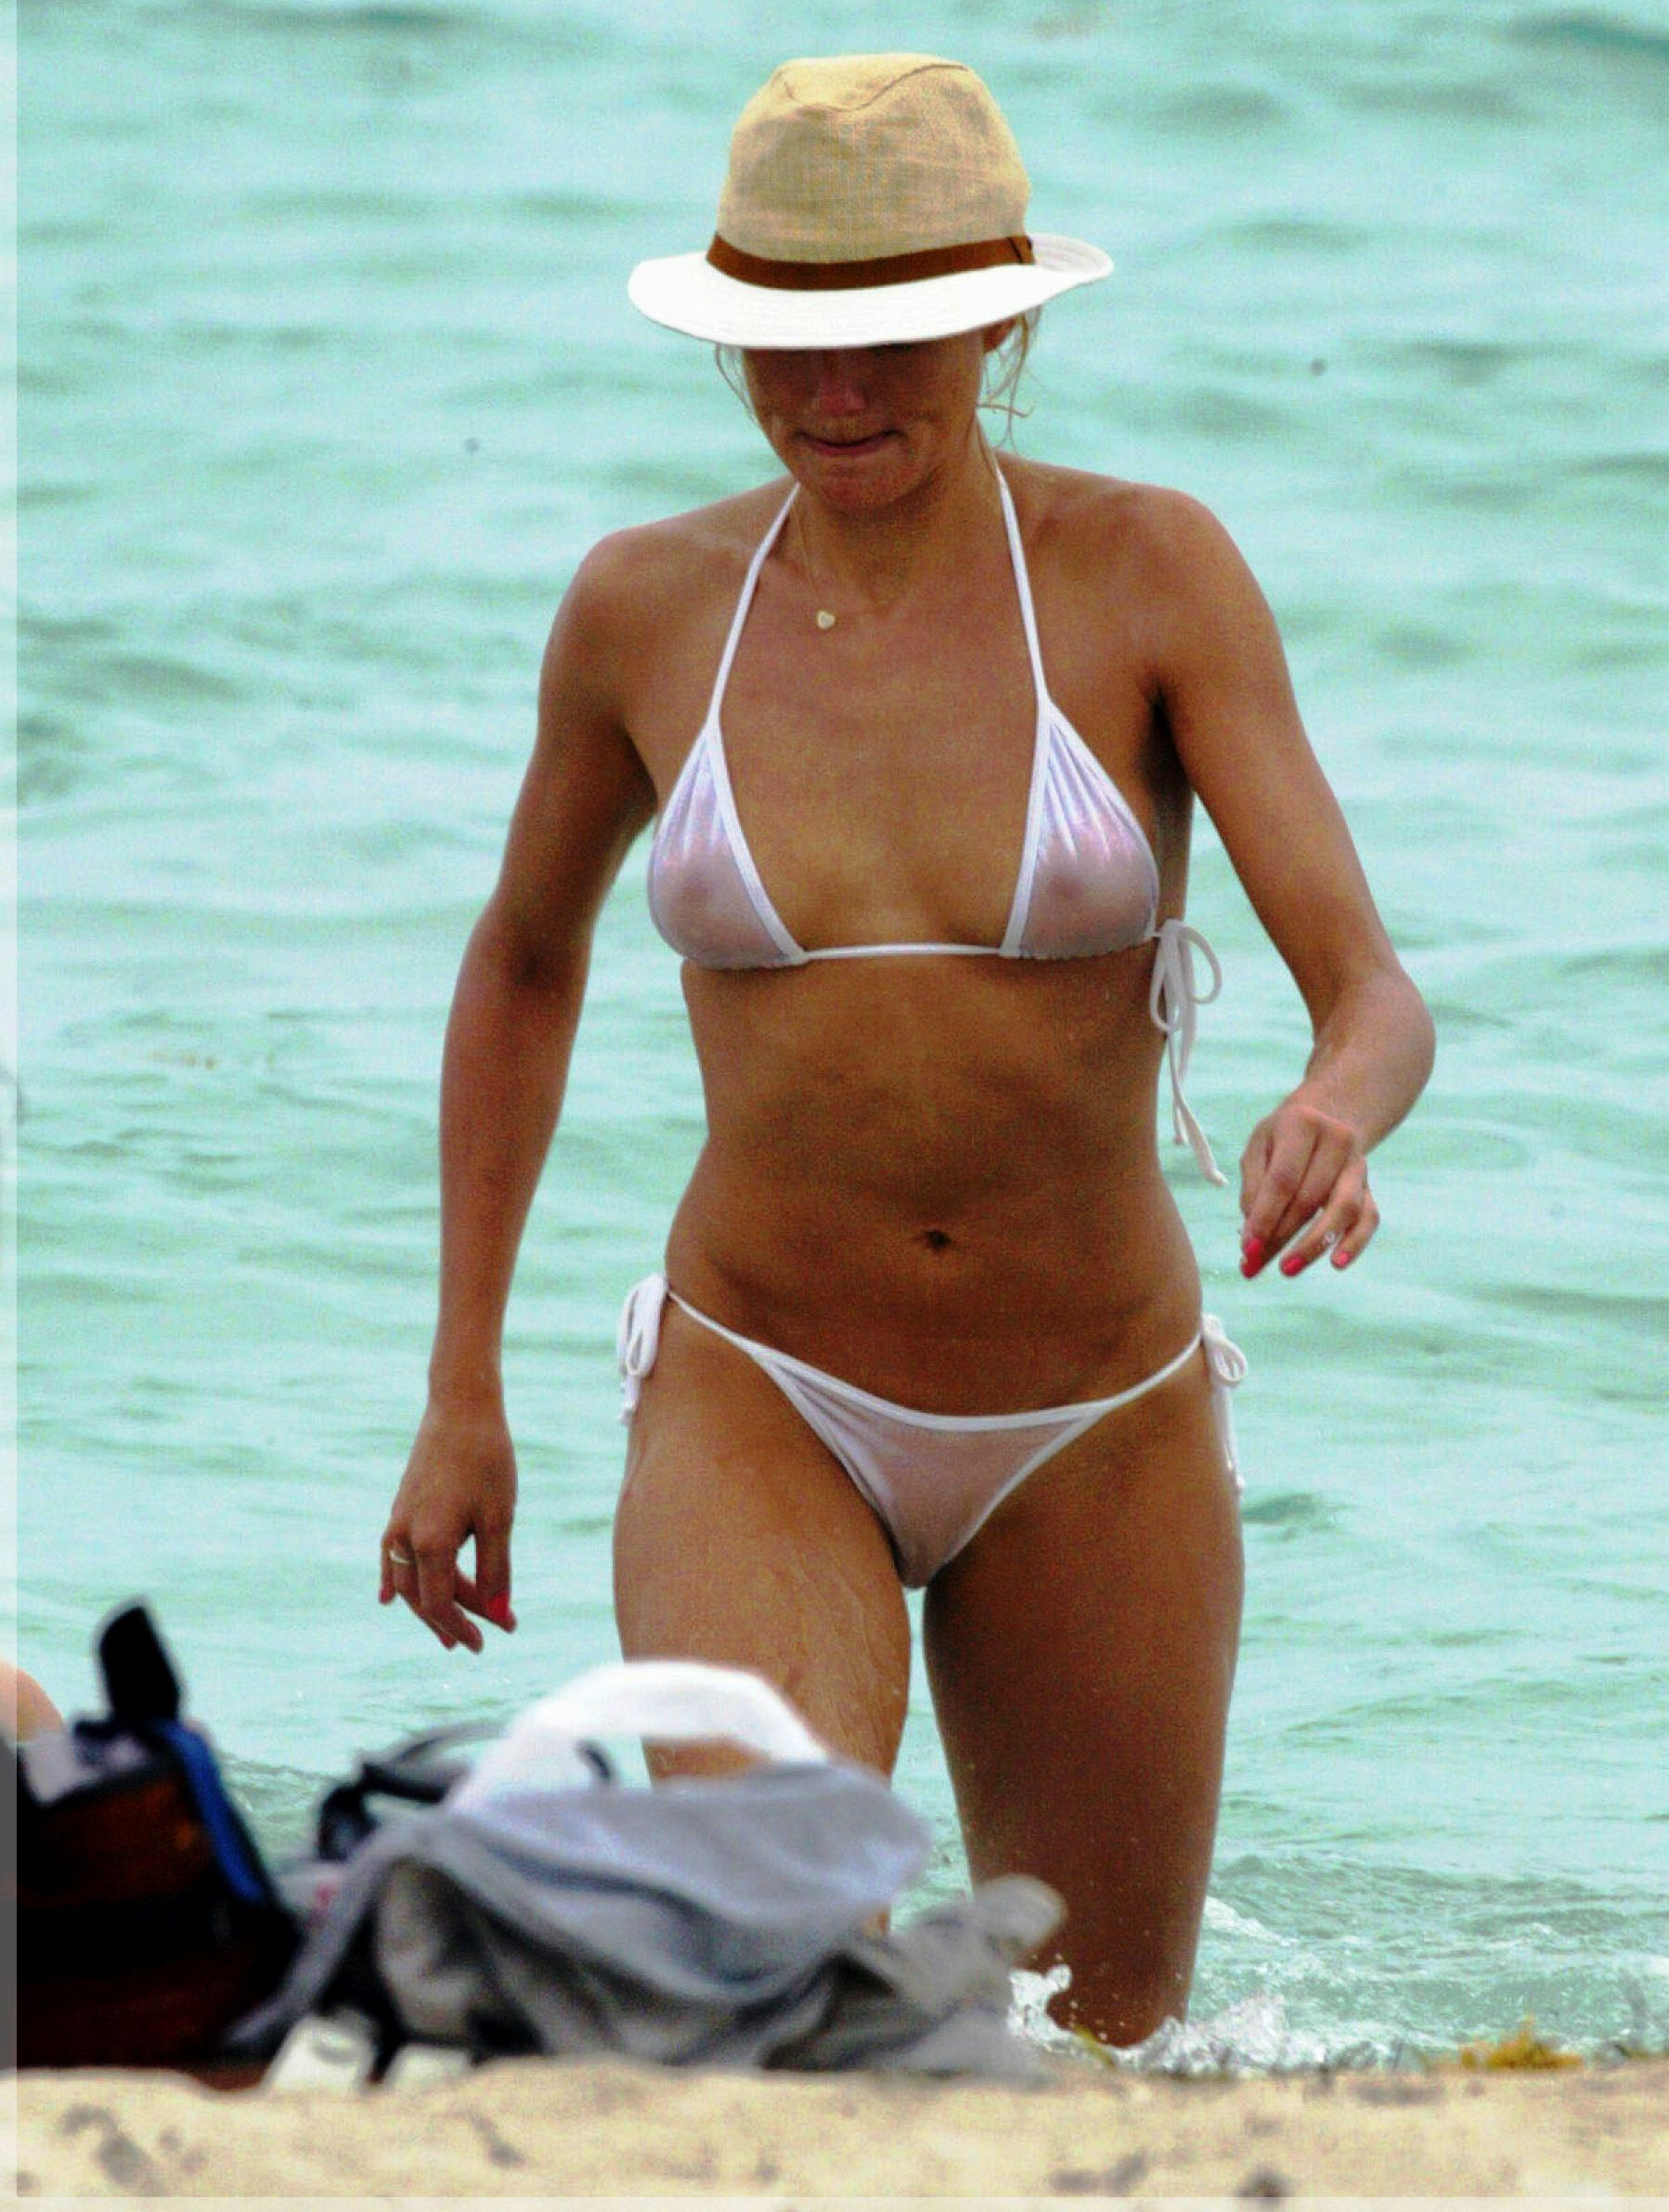 Cameron diaz see through bikini curious topic